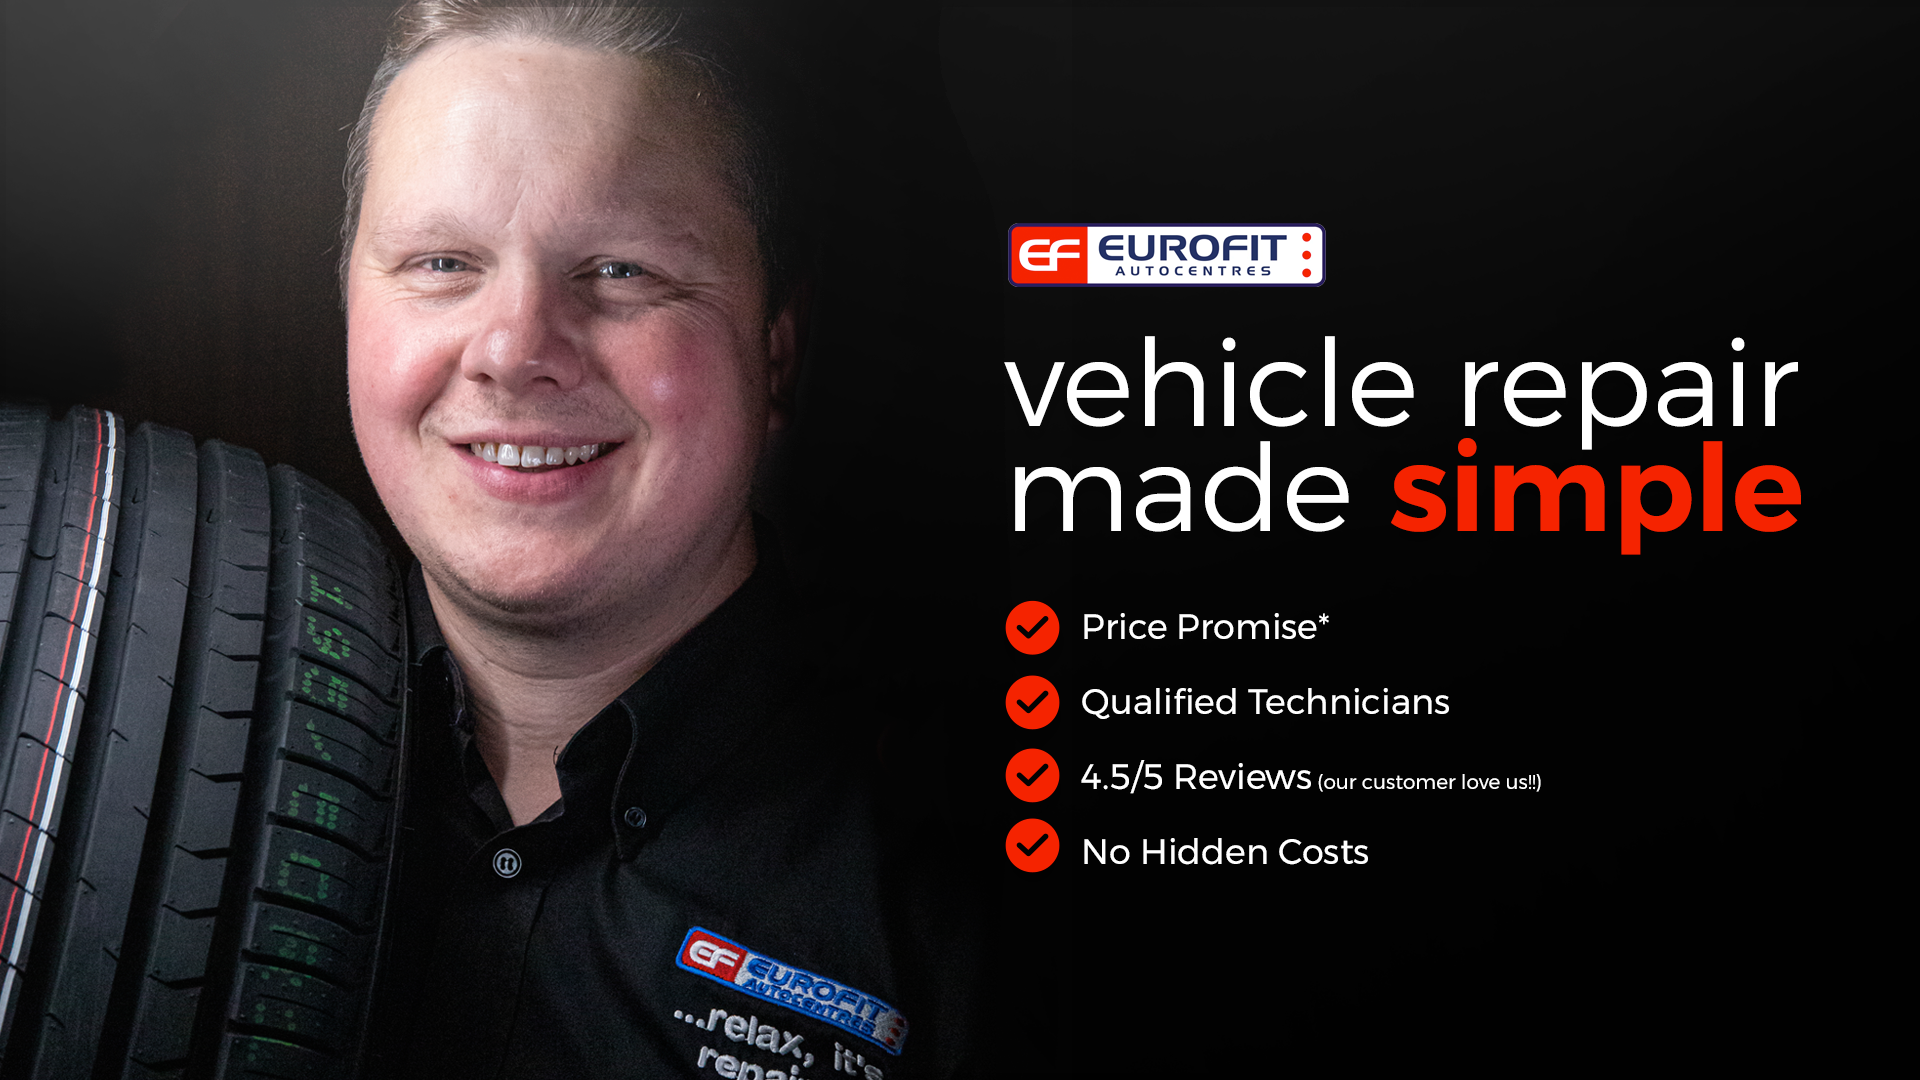 eurofit autocentres, vehicle repair made simple, price promise, qualified technicians, no hidden costs, great reviews